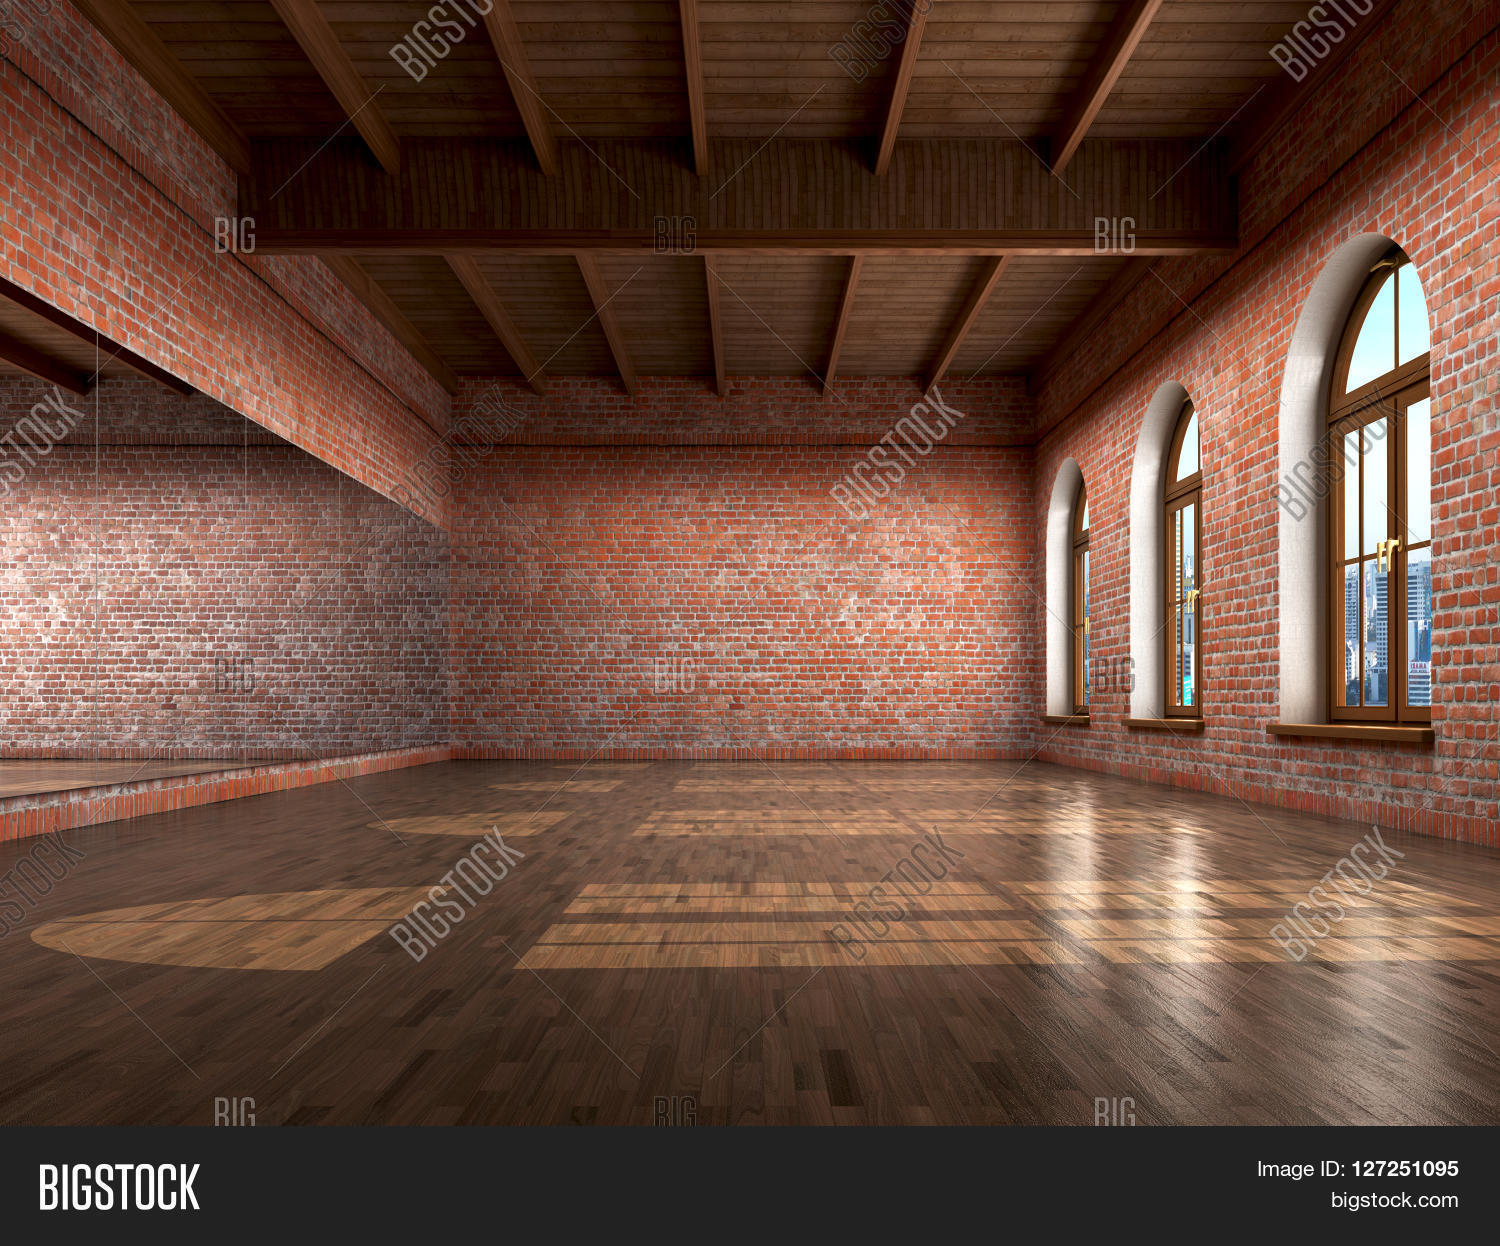 Big Empty Room Grange Style Wooden Image Amp Photo Bigstock